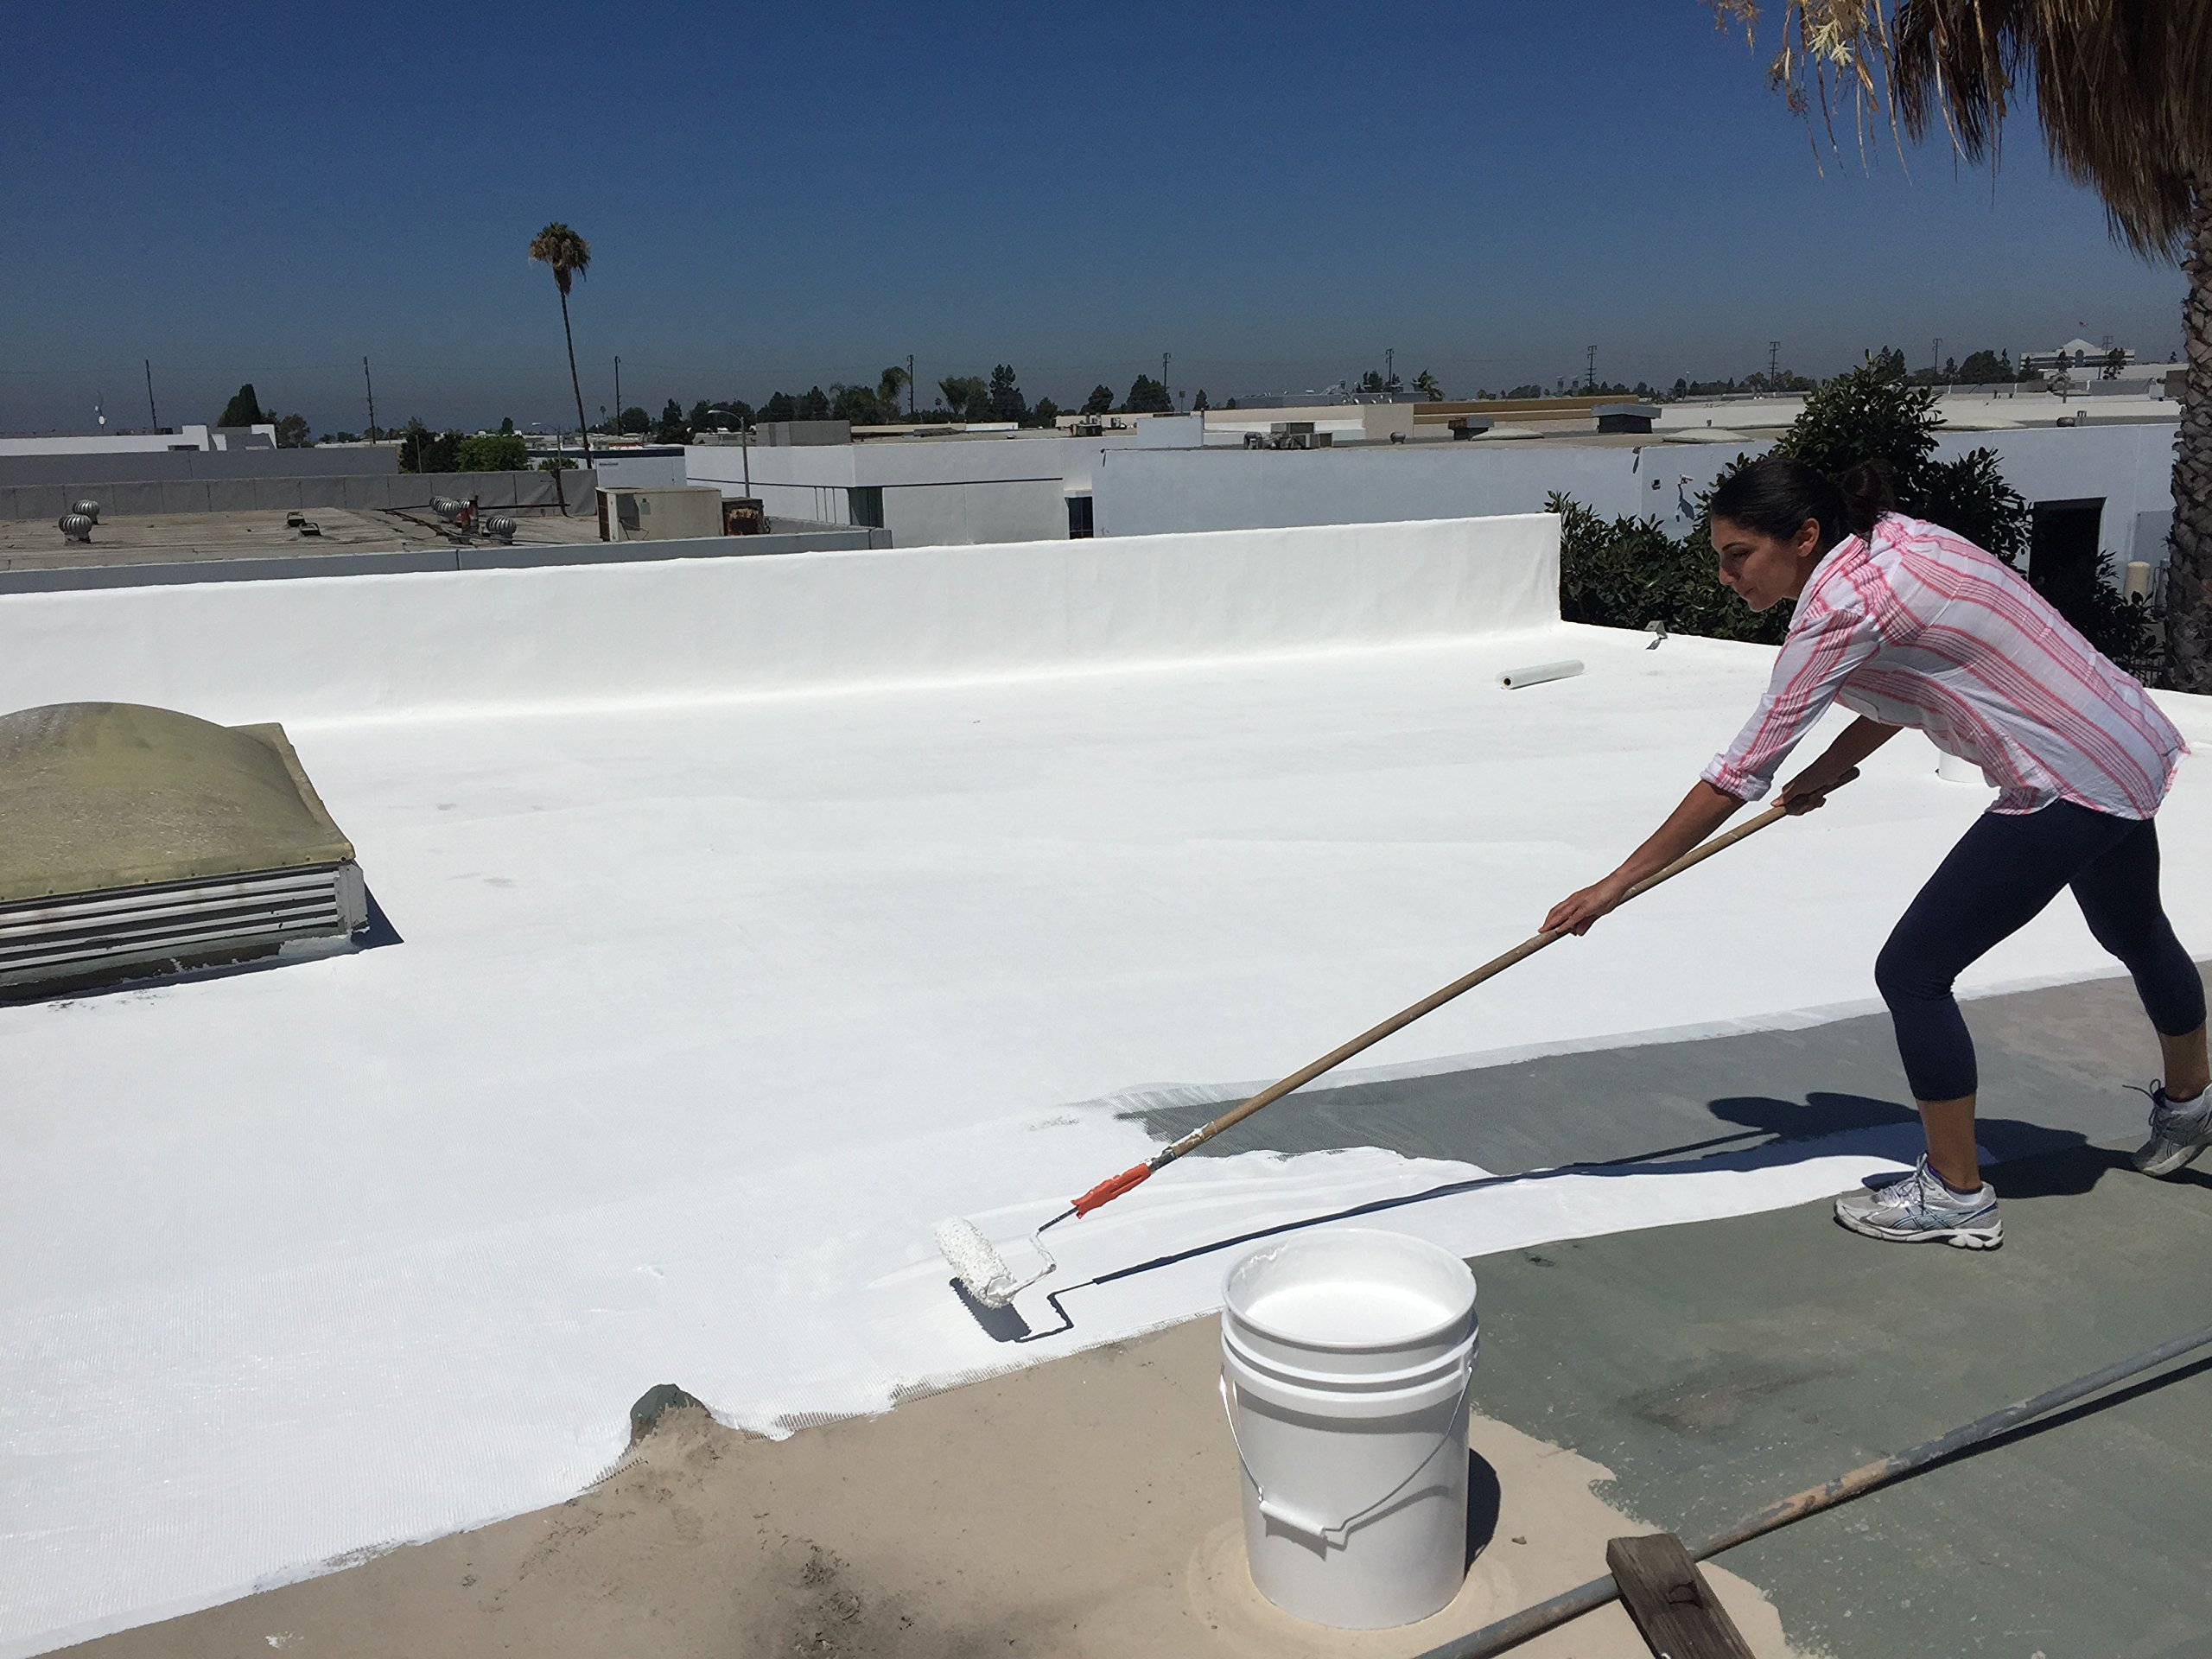 Deck Flex Elastomeric Roof Coating (5 Gallons) - Siliconized, Weather-Resistant White Reflective Protection – Up to 30% Energy Savings – Paint or Roll On RV, Metal, Asphalt, Flat or BUR Roofing by Deck Flex